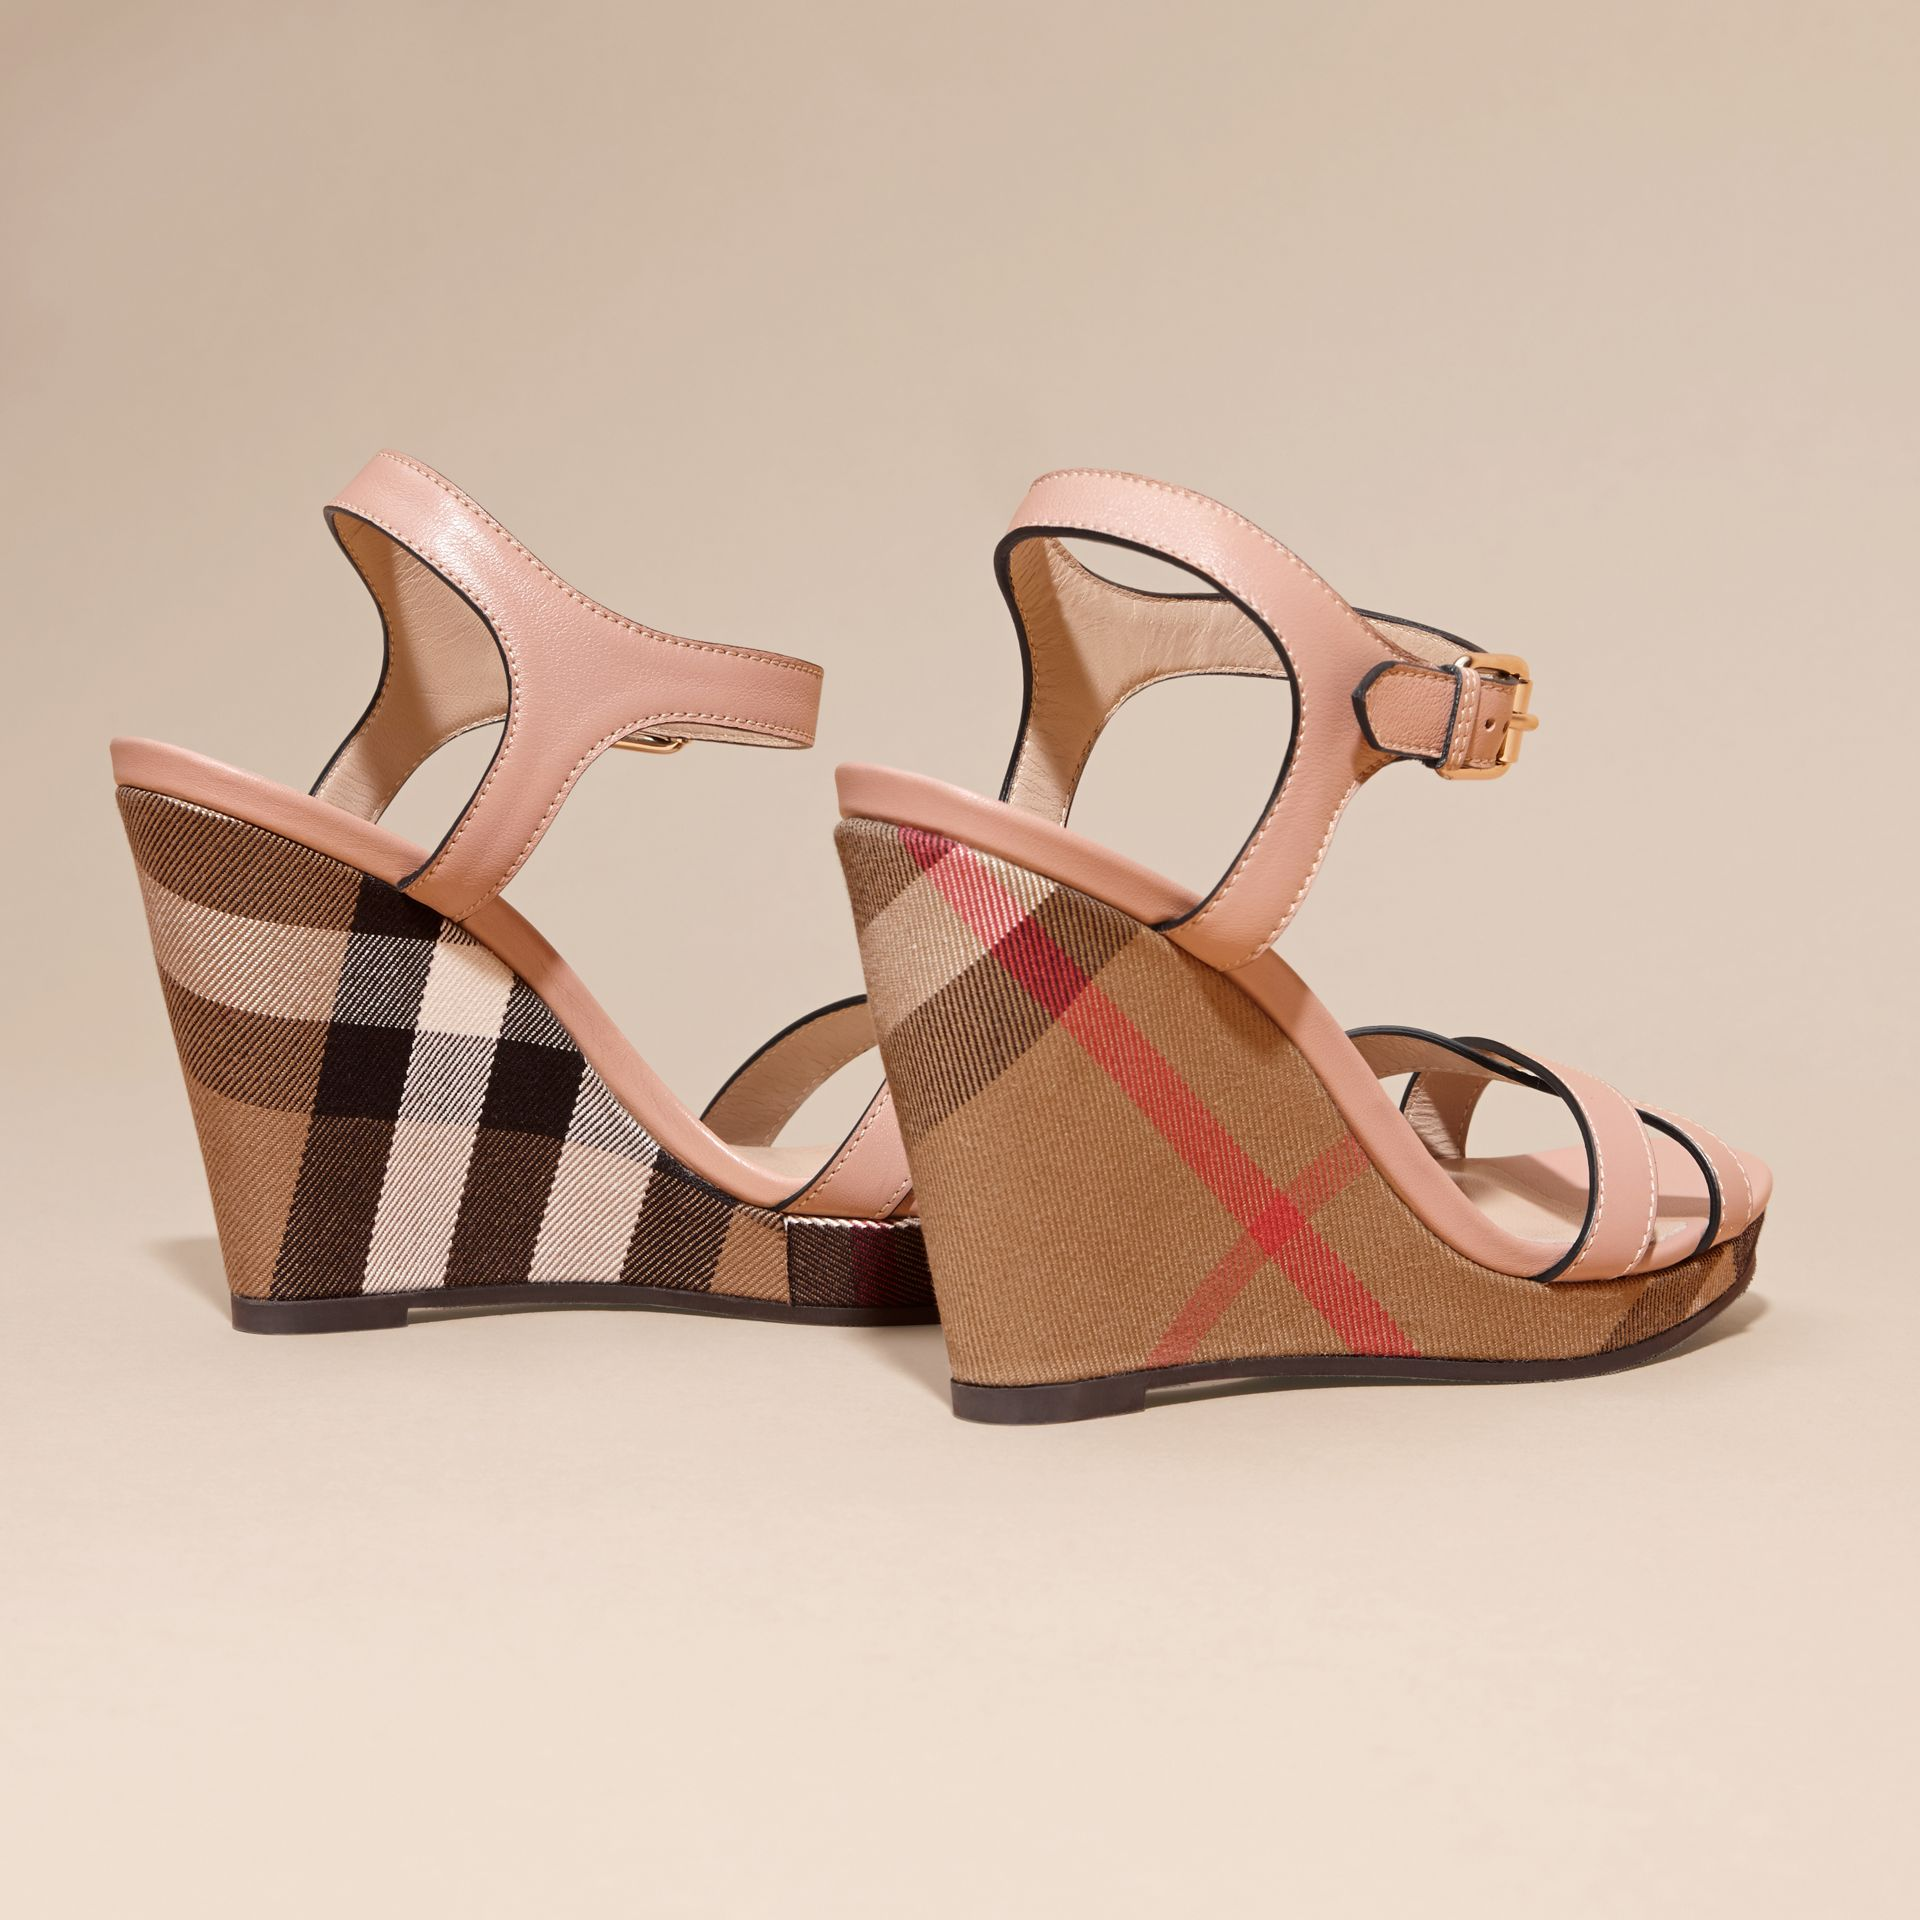 House Check Detail Leather Wedge Sandals in Nude Blush - Women | Burberry Singapore - gallery image 4